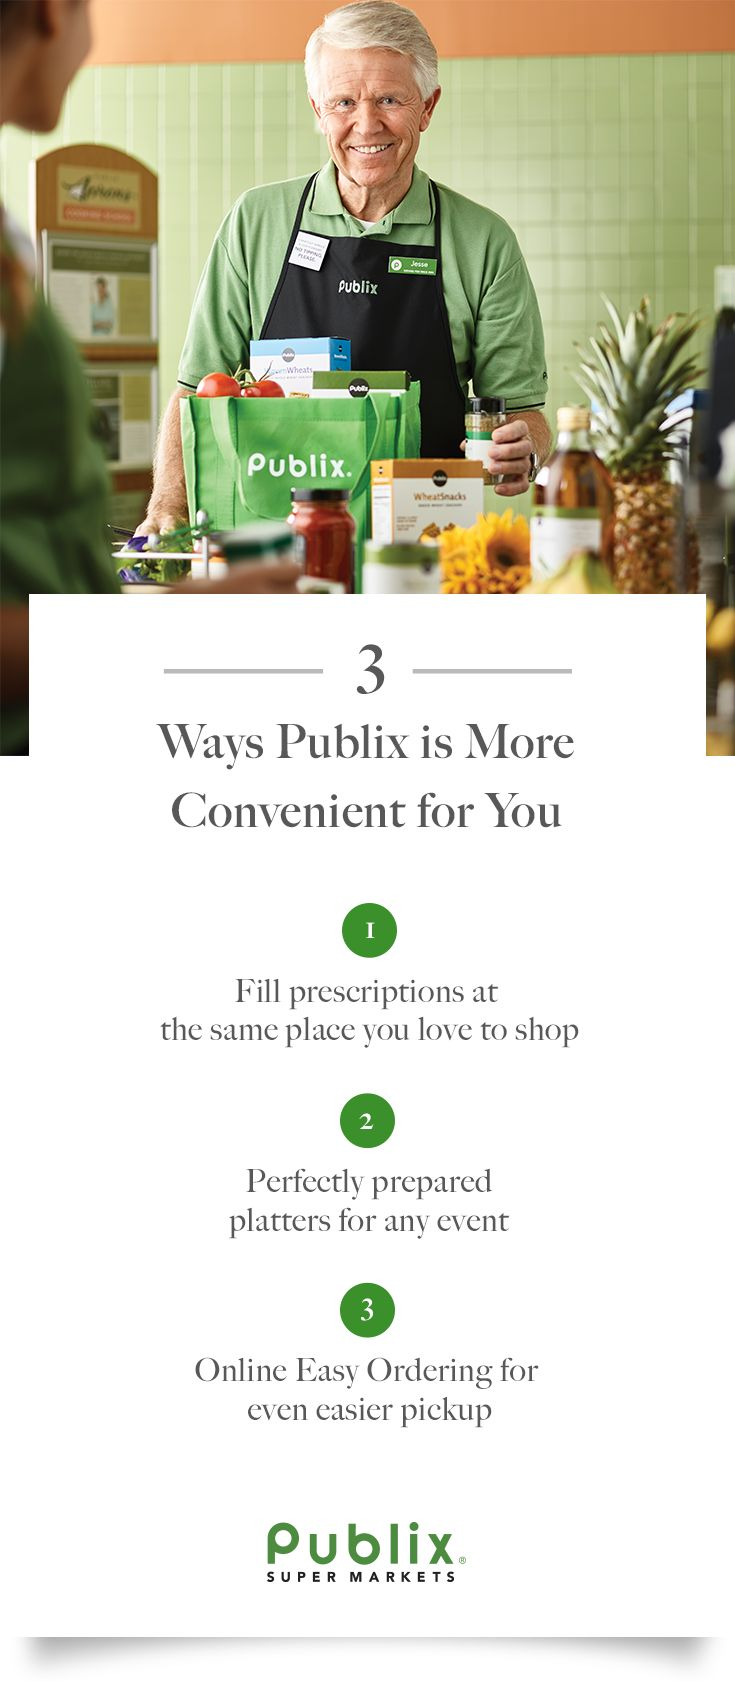 We know you can be busy. And at Publix Super Markets, we're here to help. You can refill your prescriptions at our Pharmacy, and make dinner simple with Online Easy Ordering. Or pick up prepared and ready-to-cook items for a fast and delicious meal. We love to help you in any way we can.